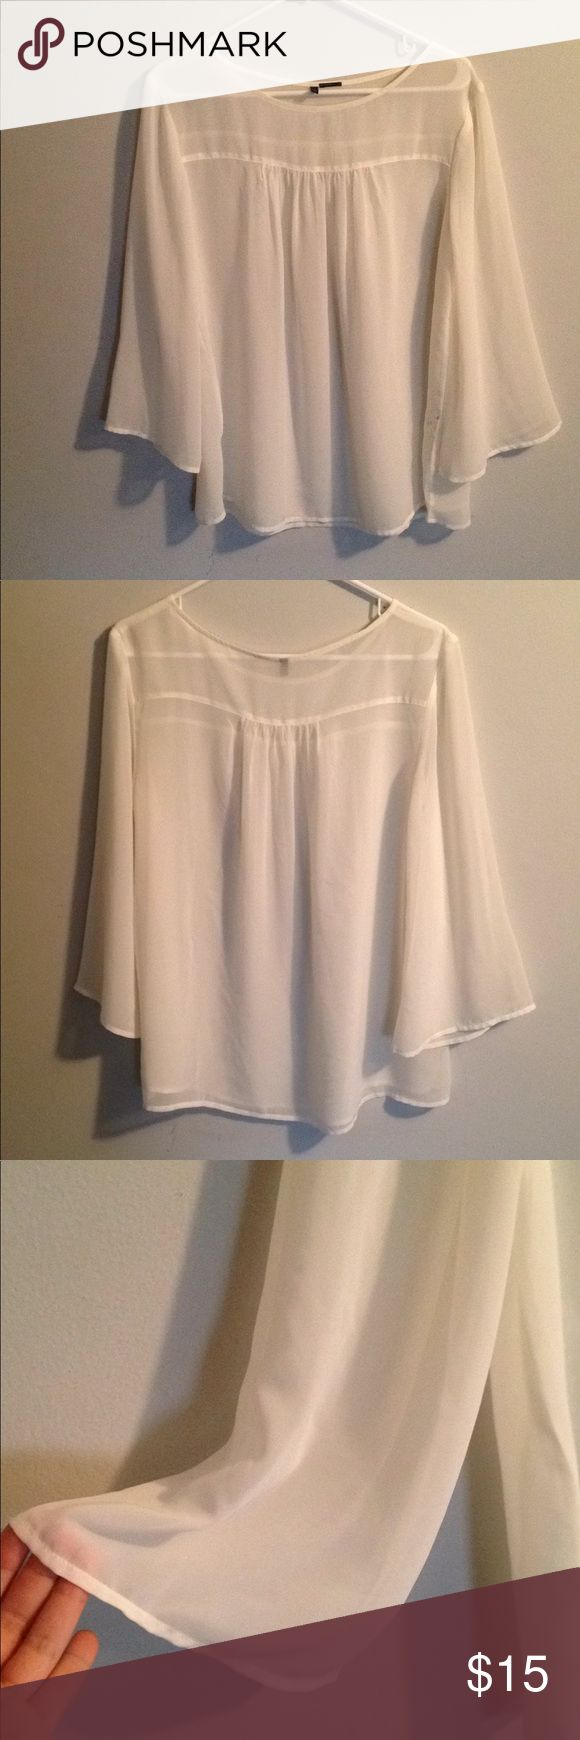 United Colors of Benetton Blouse United Colors of Benetton white sheer blouse with belled sleeves. Worn once, in great condition! Beautiful dressed up or down-- very versatile! The sleeves make it fun and unique! United Colors Of Benetton Tops